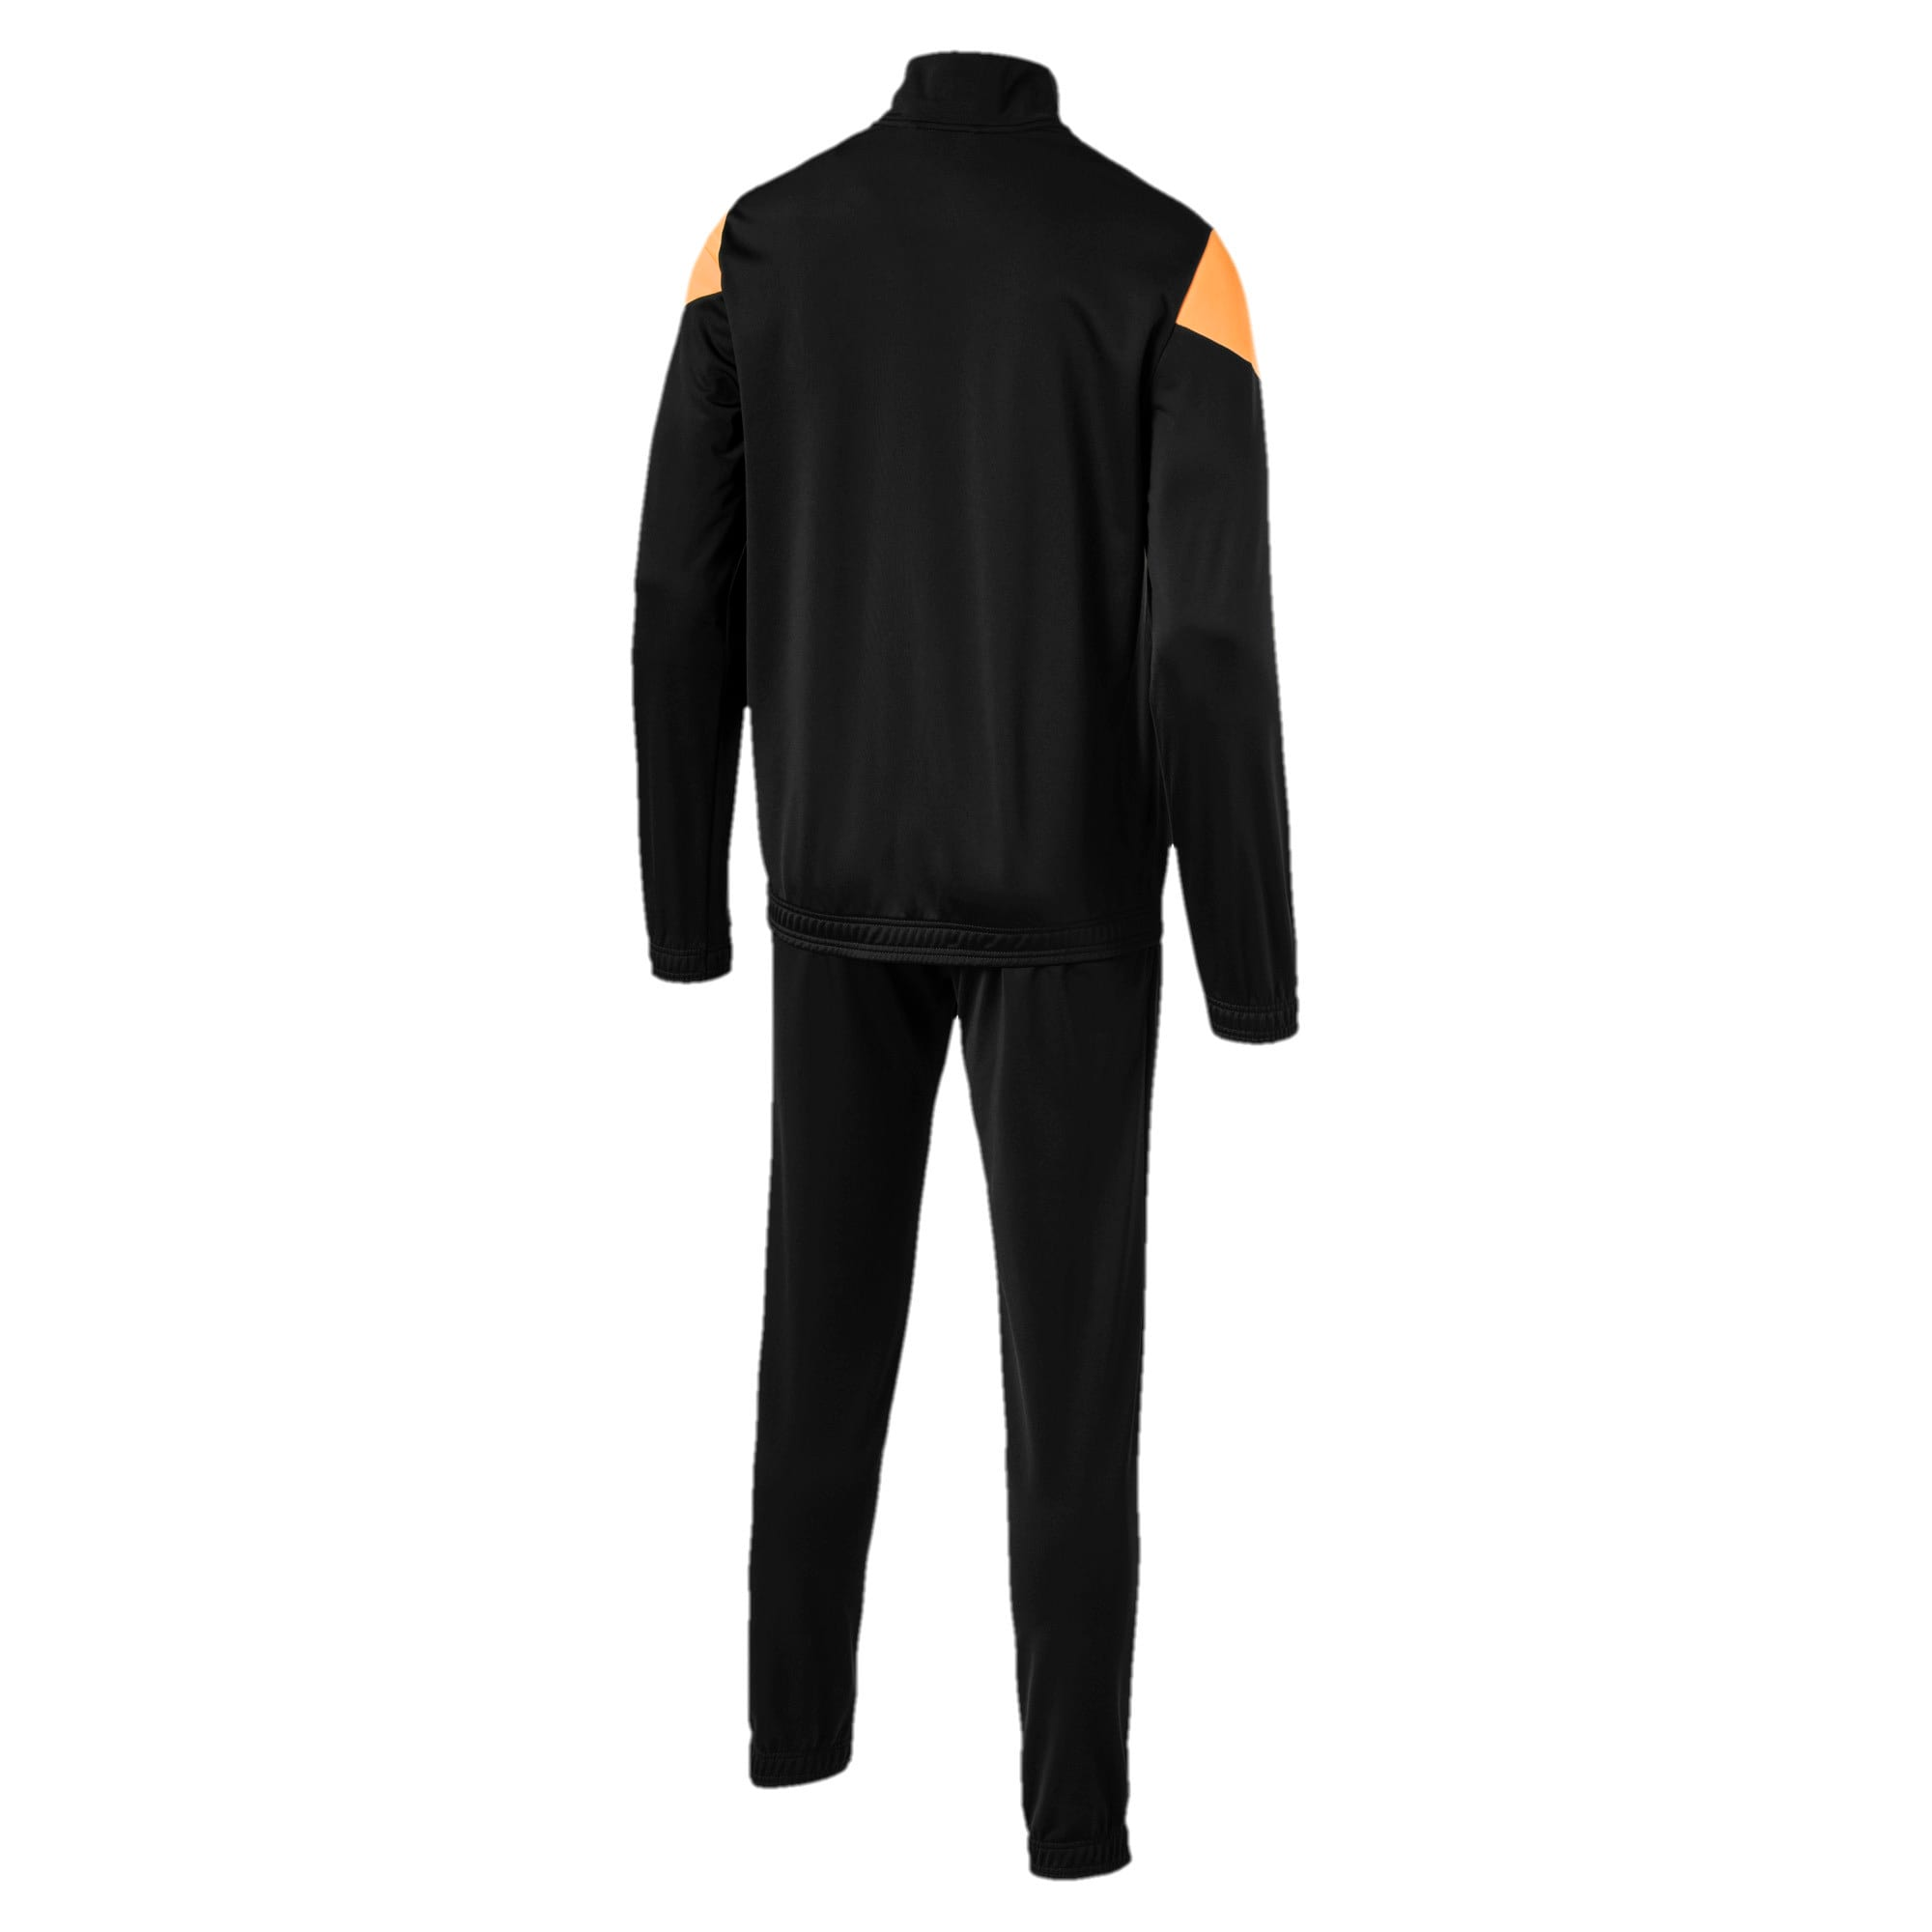 Thumbnail 5 of Clean Tricot Men's Track Suit, Puma Black, medium-IND